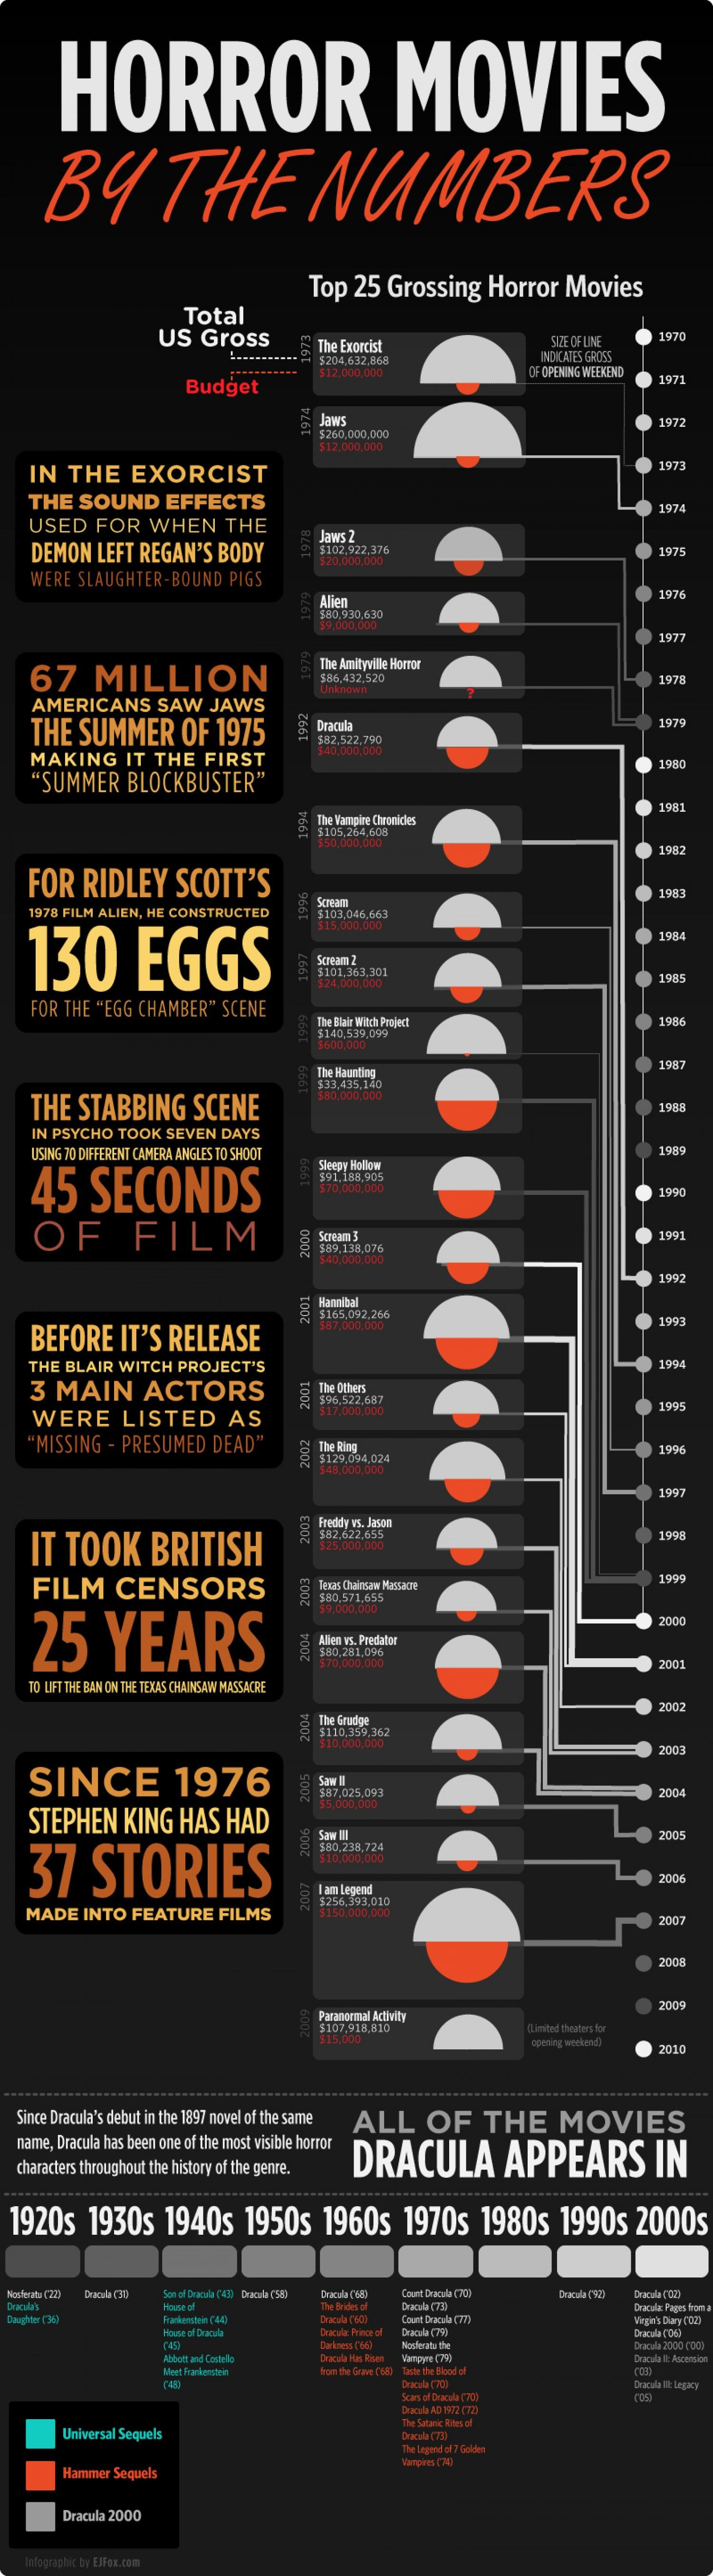 history of horror movies by the numbers infographic - Halloween Movie History